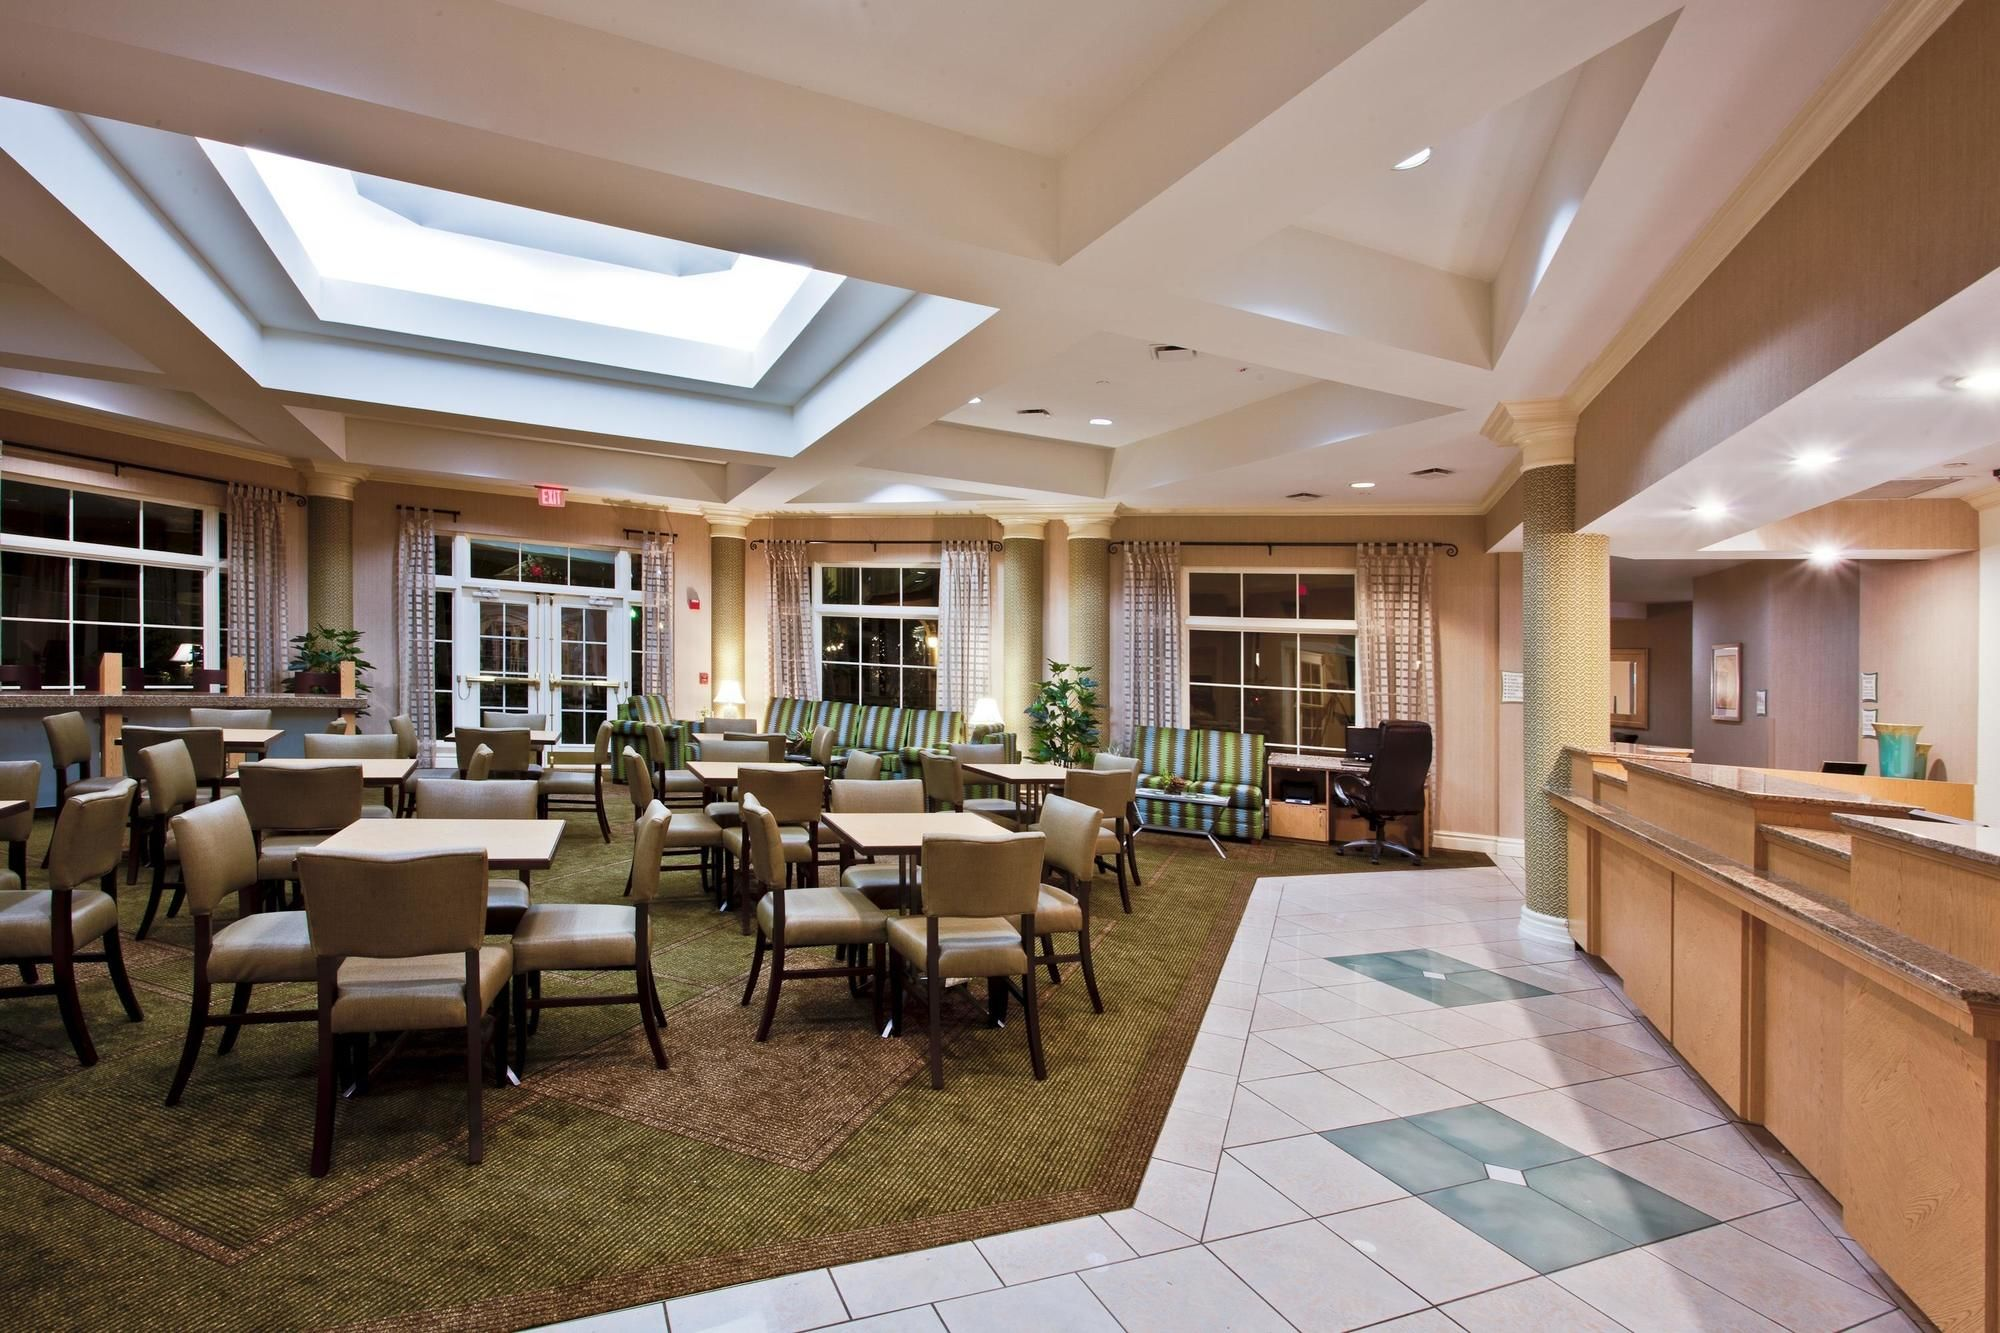 Tampa Hotel Coupons for Tampa, Florida - FreeHotelCoupons.com